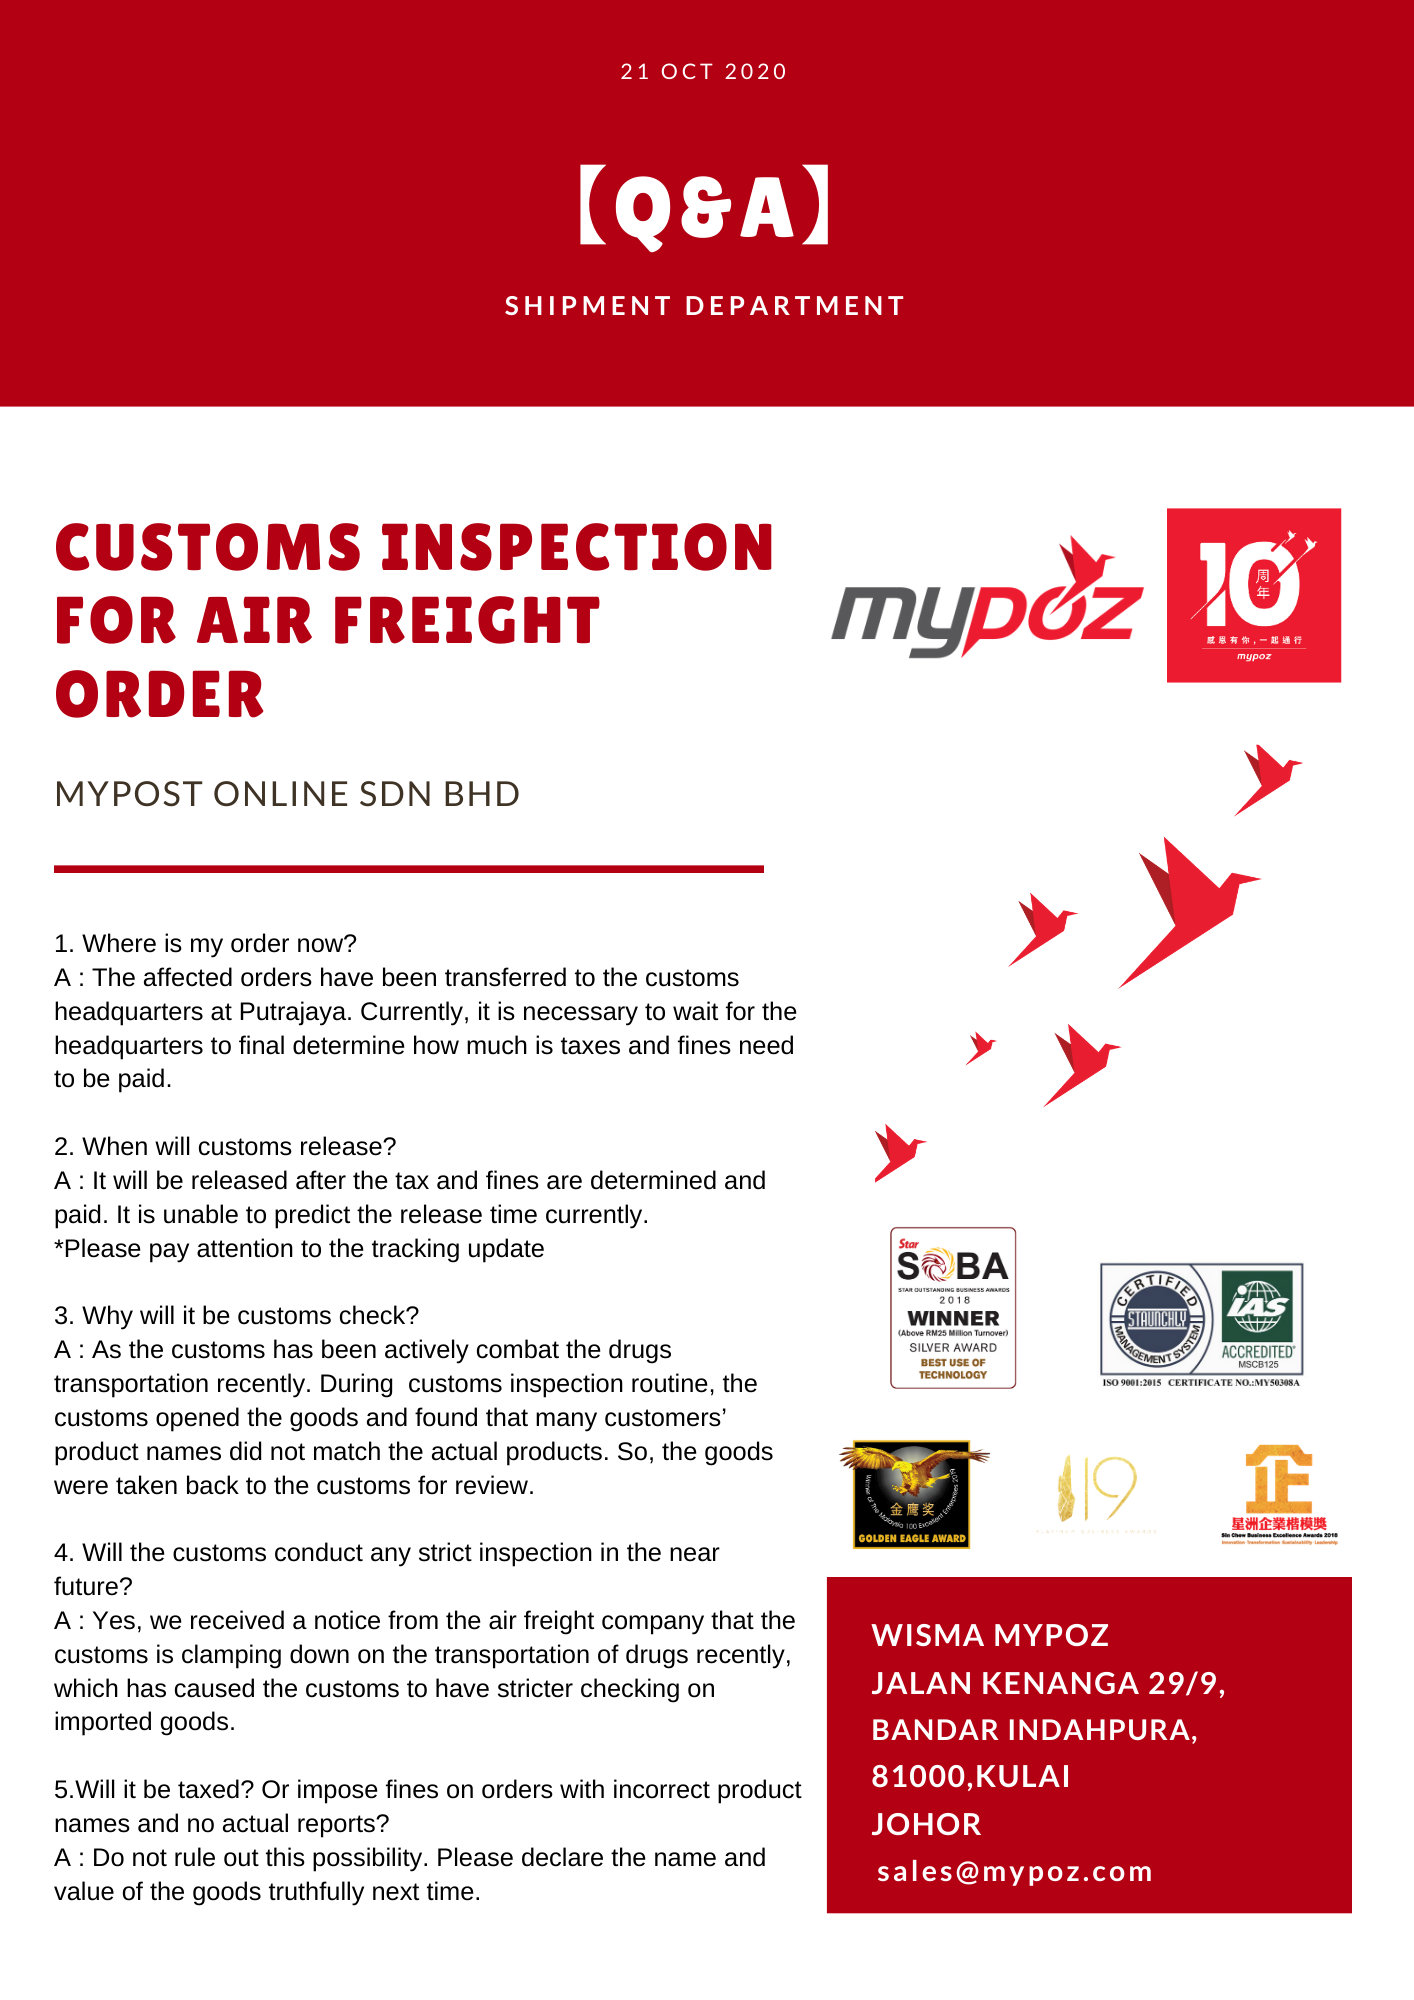 【Q&A】Customs inspection for air freight order